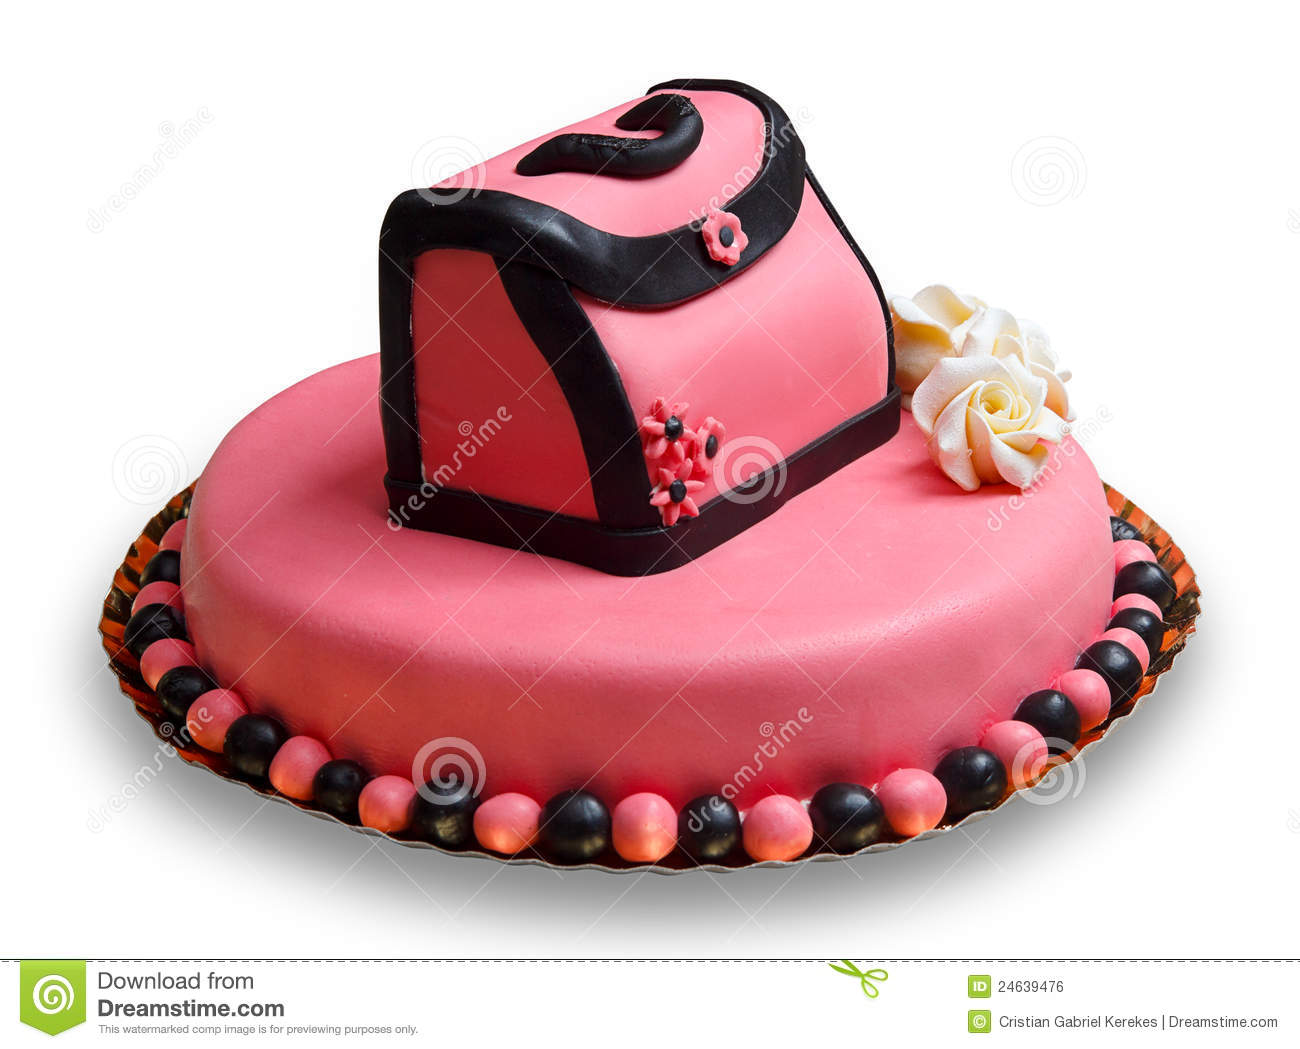 Birthday Cake With Pink Frostingdecorated Handbag Royalty Free